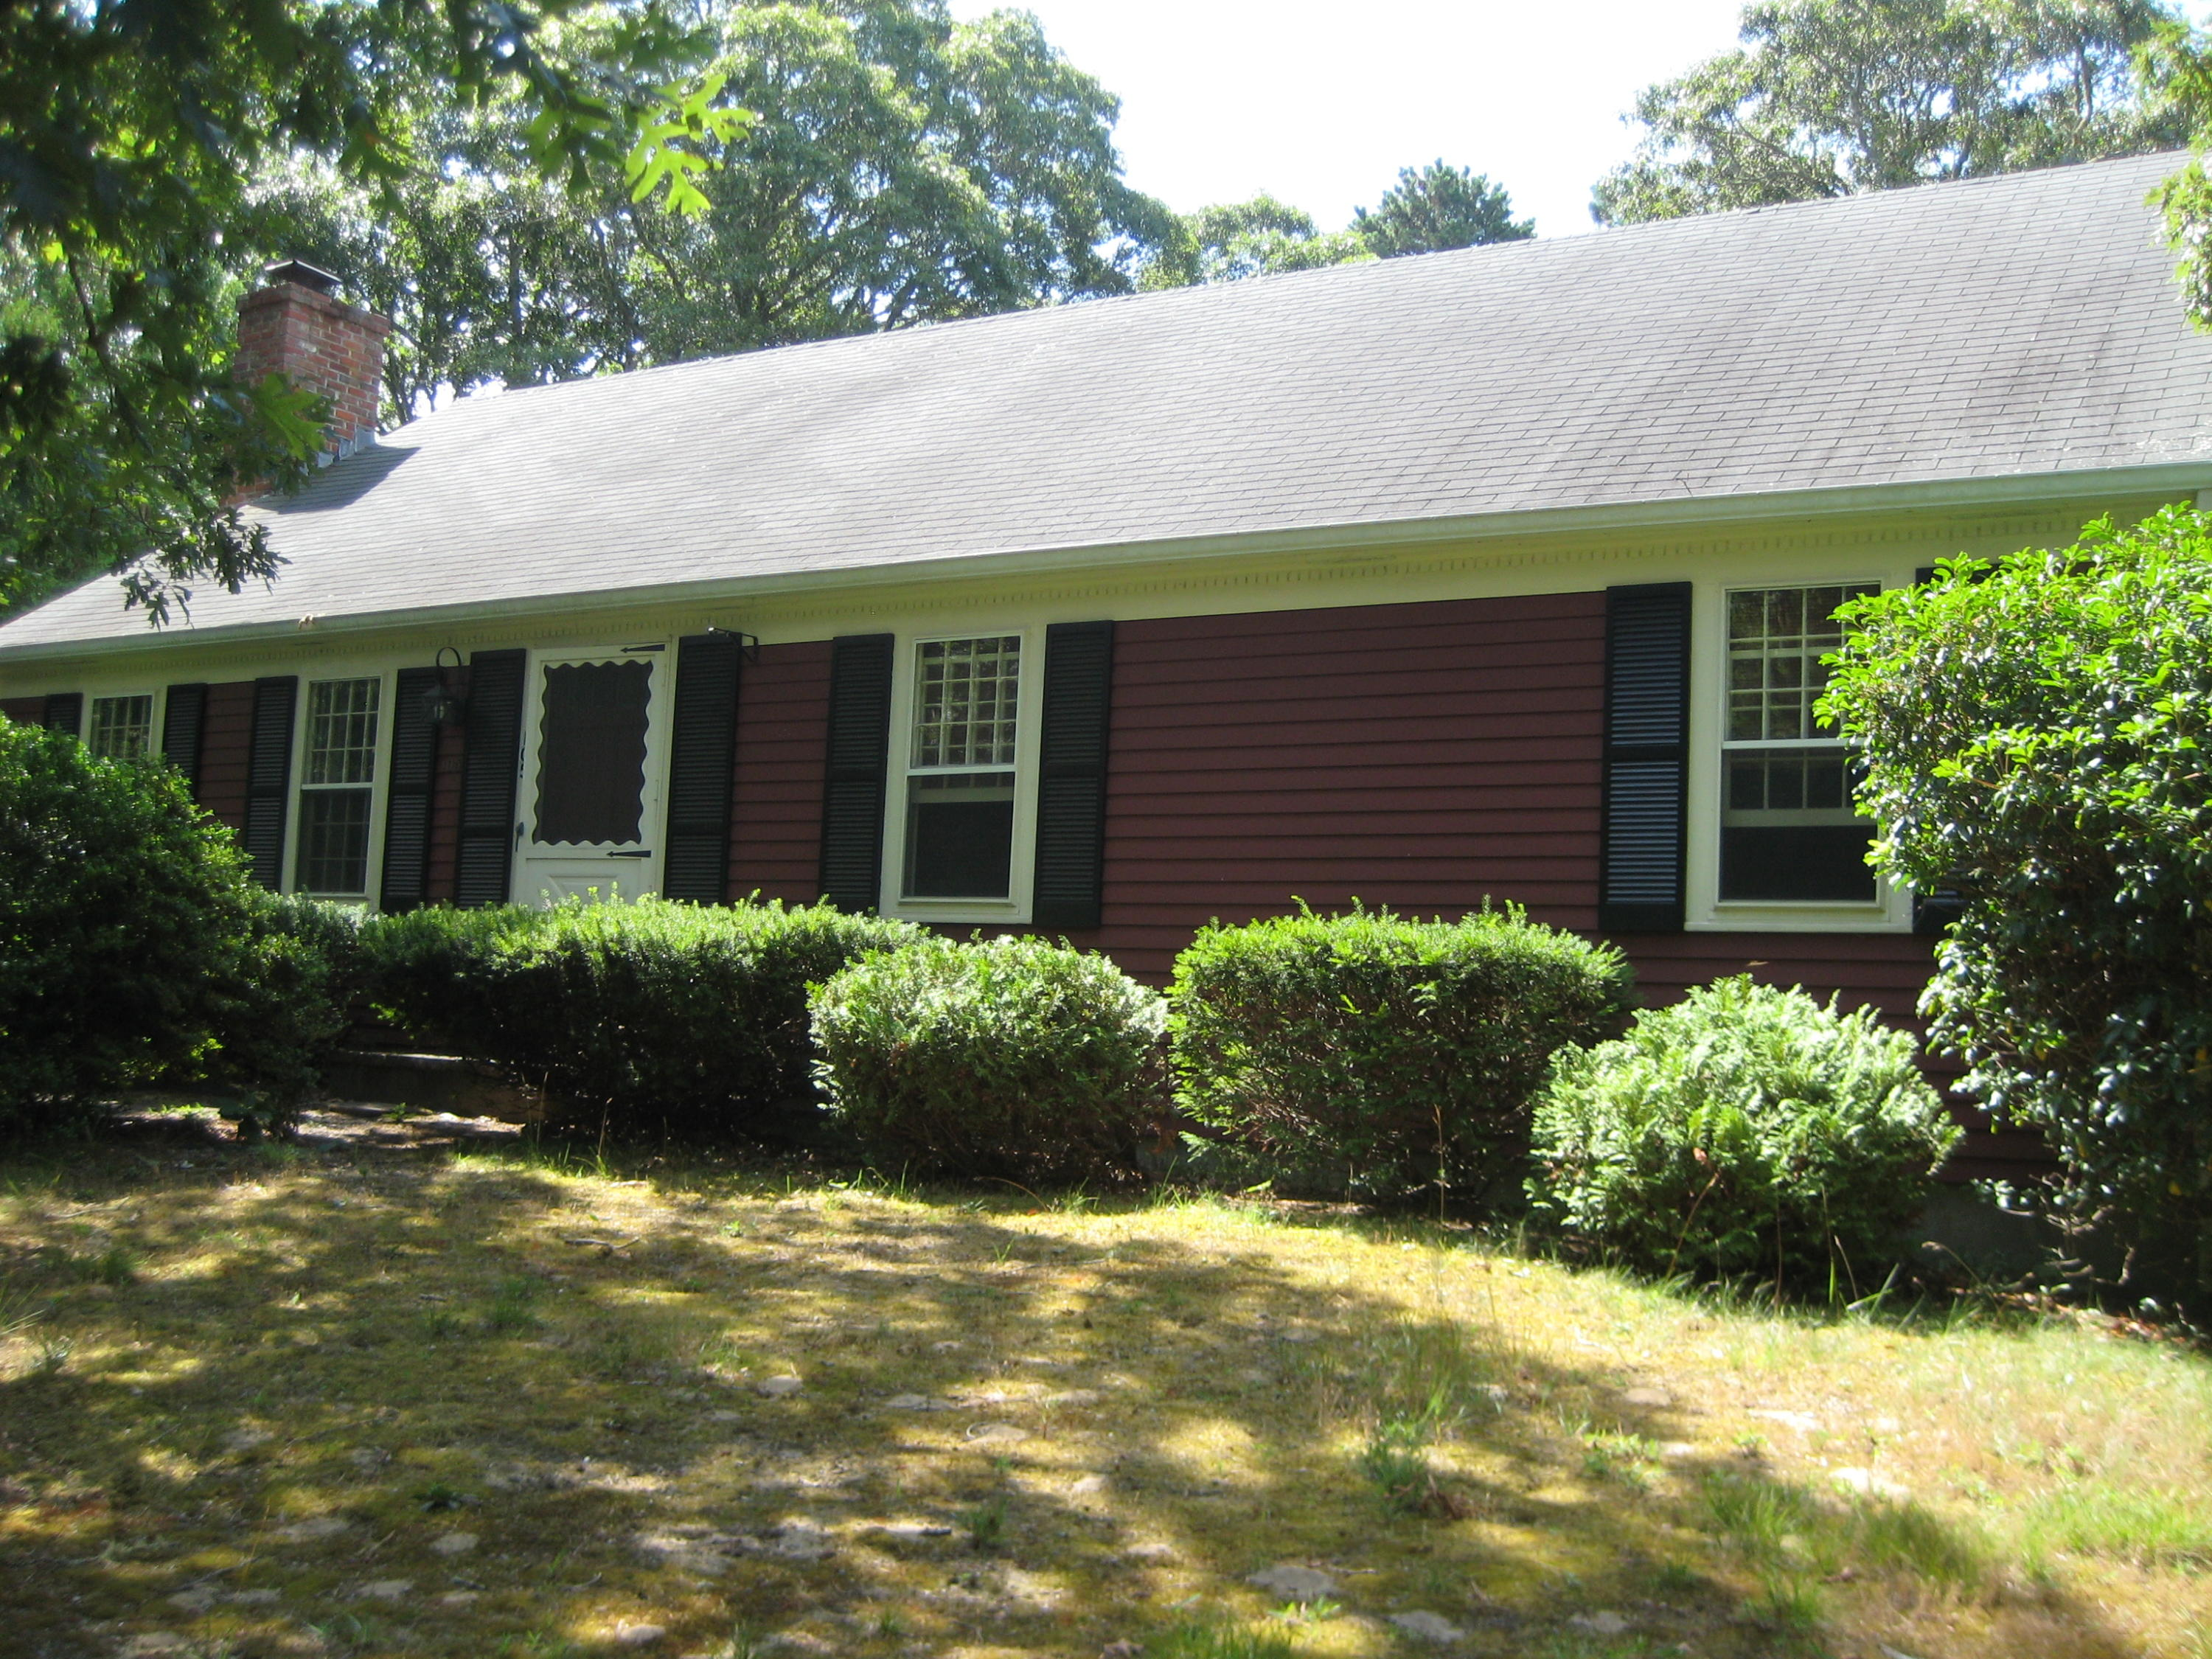 105  Horseshoe Way, Brewster MA, 02631